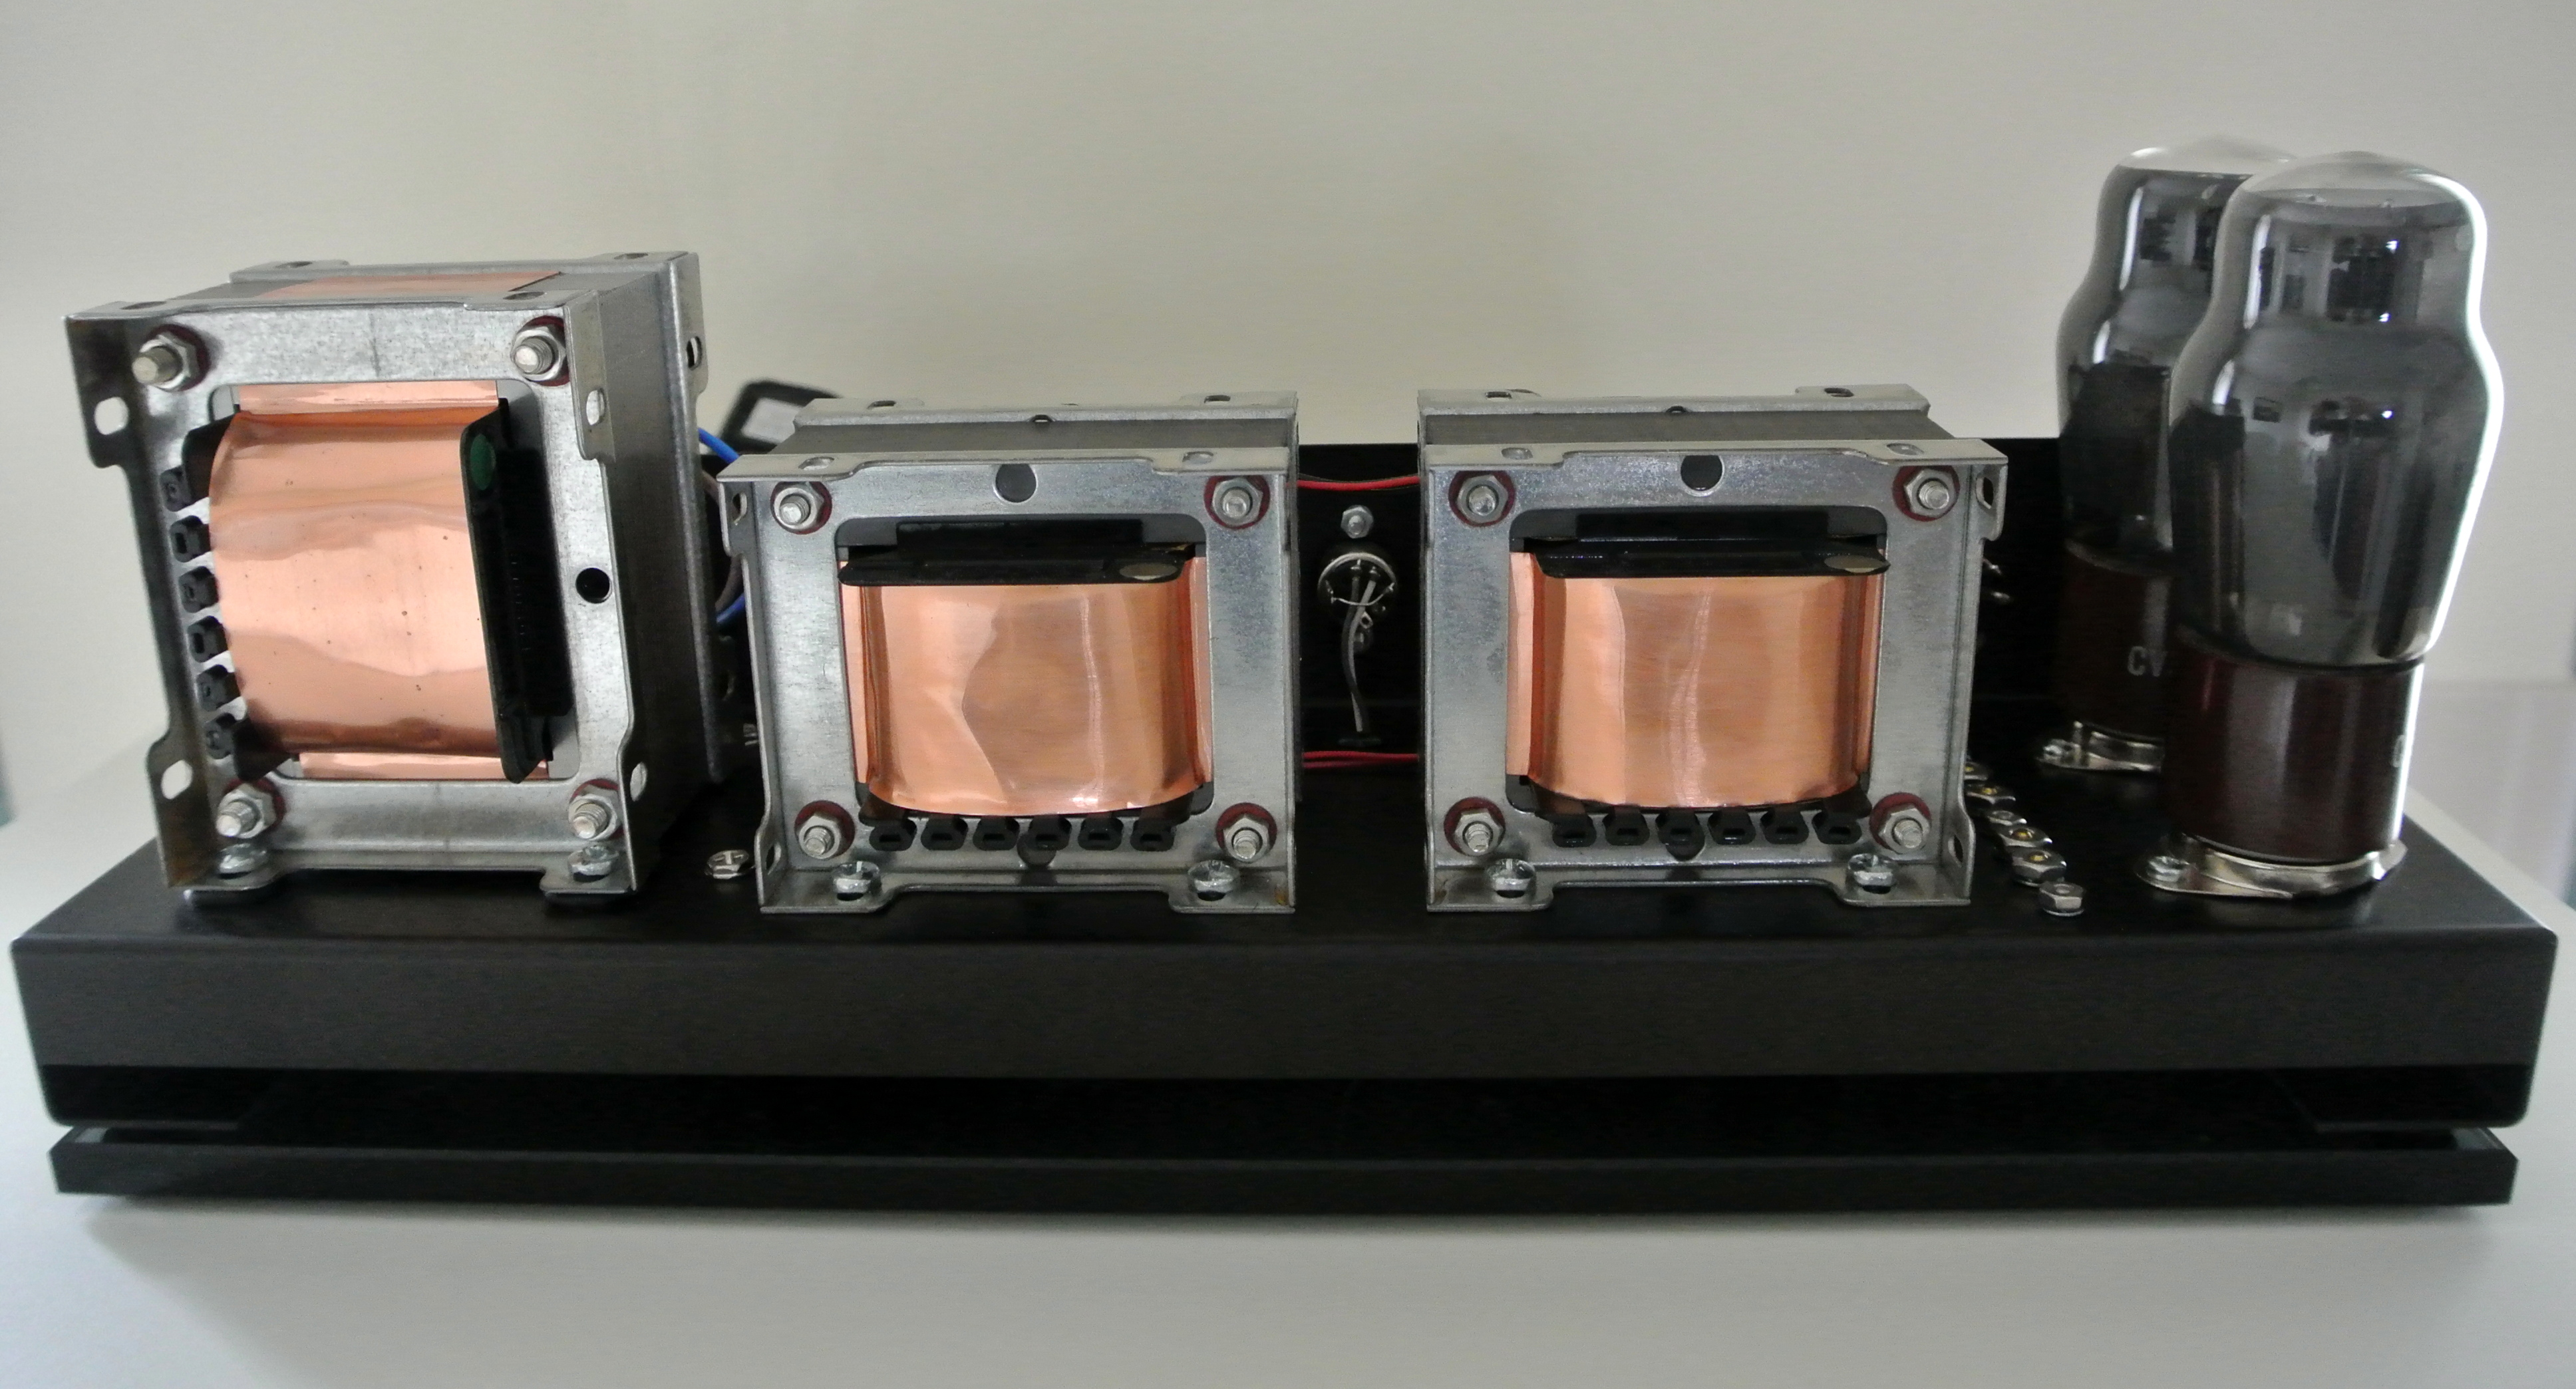 6V6 Tube Amplifier Set on Glass Plinth